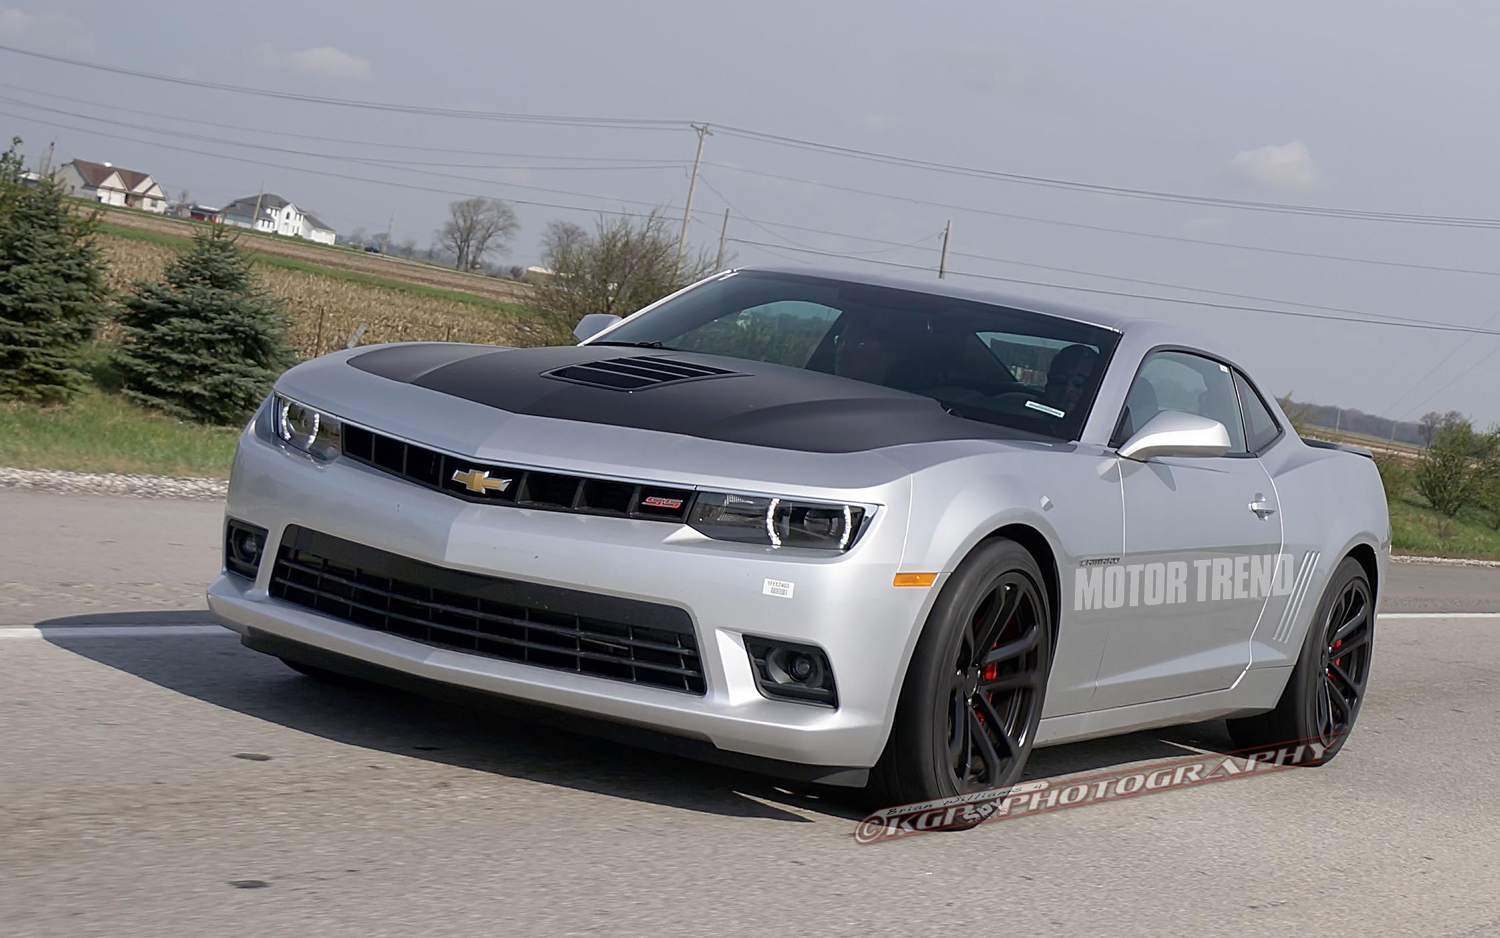 2014 Chevrolet Camaro Spied in ZL1, 1LE, RS Forms - Motor Trend